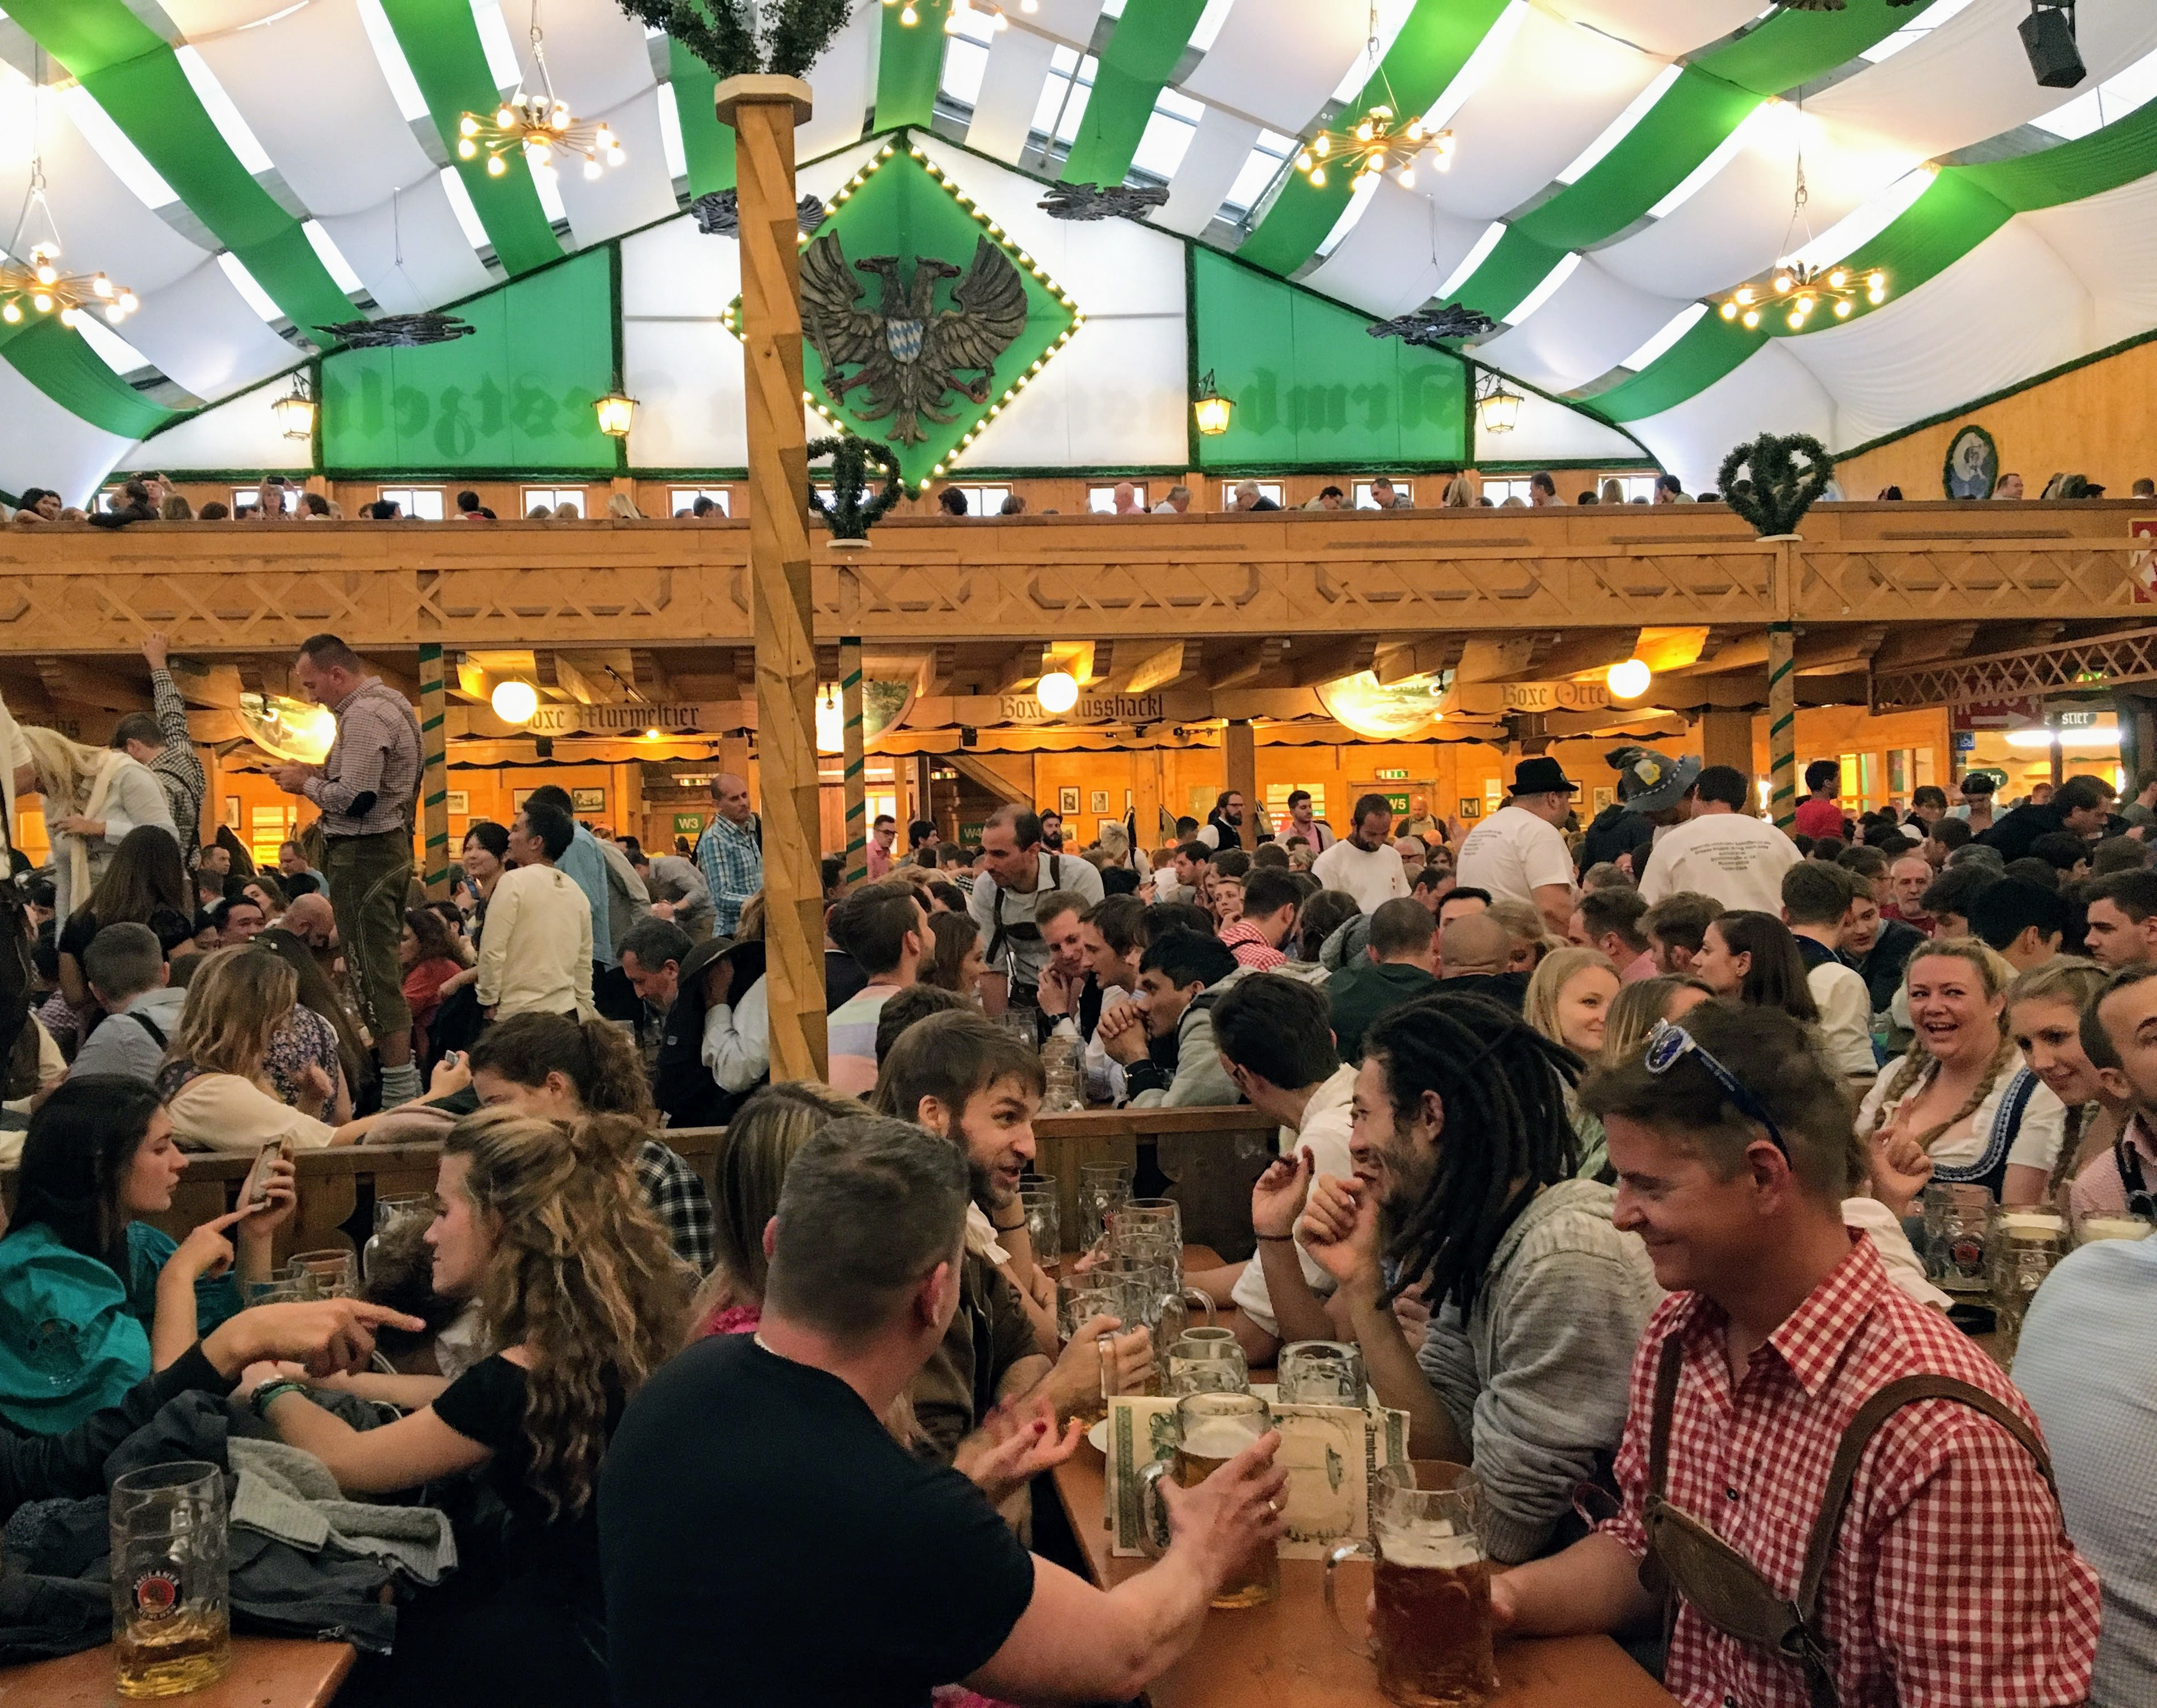 Inside a beer tent at Oktoberfest in Munich Germany & Oktoberfest: What to Know Before You Go